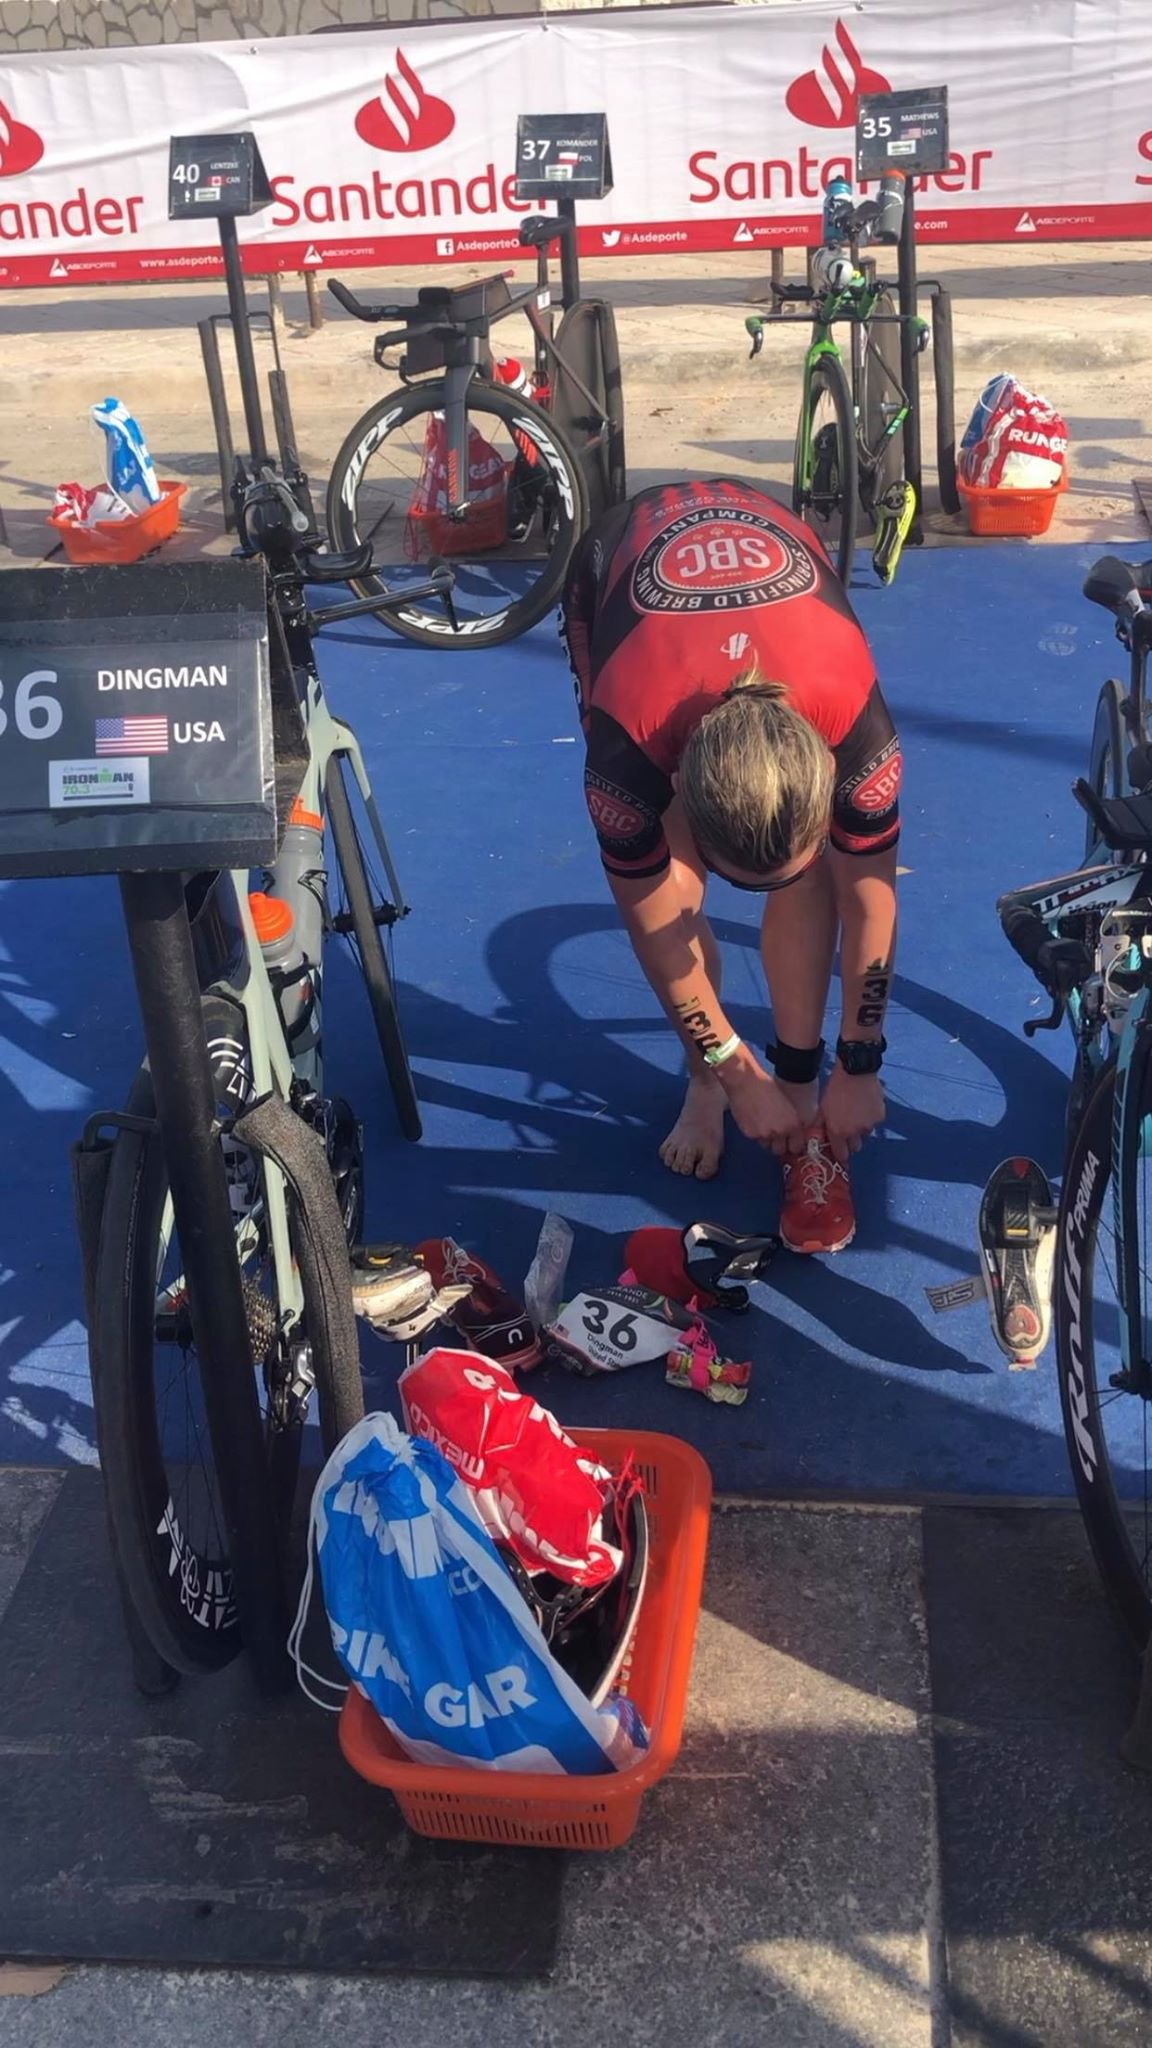 Coach_Terry_Wilson_Pursuit_of_The_Perfect_Race_IRONMAN_Campeche_Danielle_Dingman_7.jpg